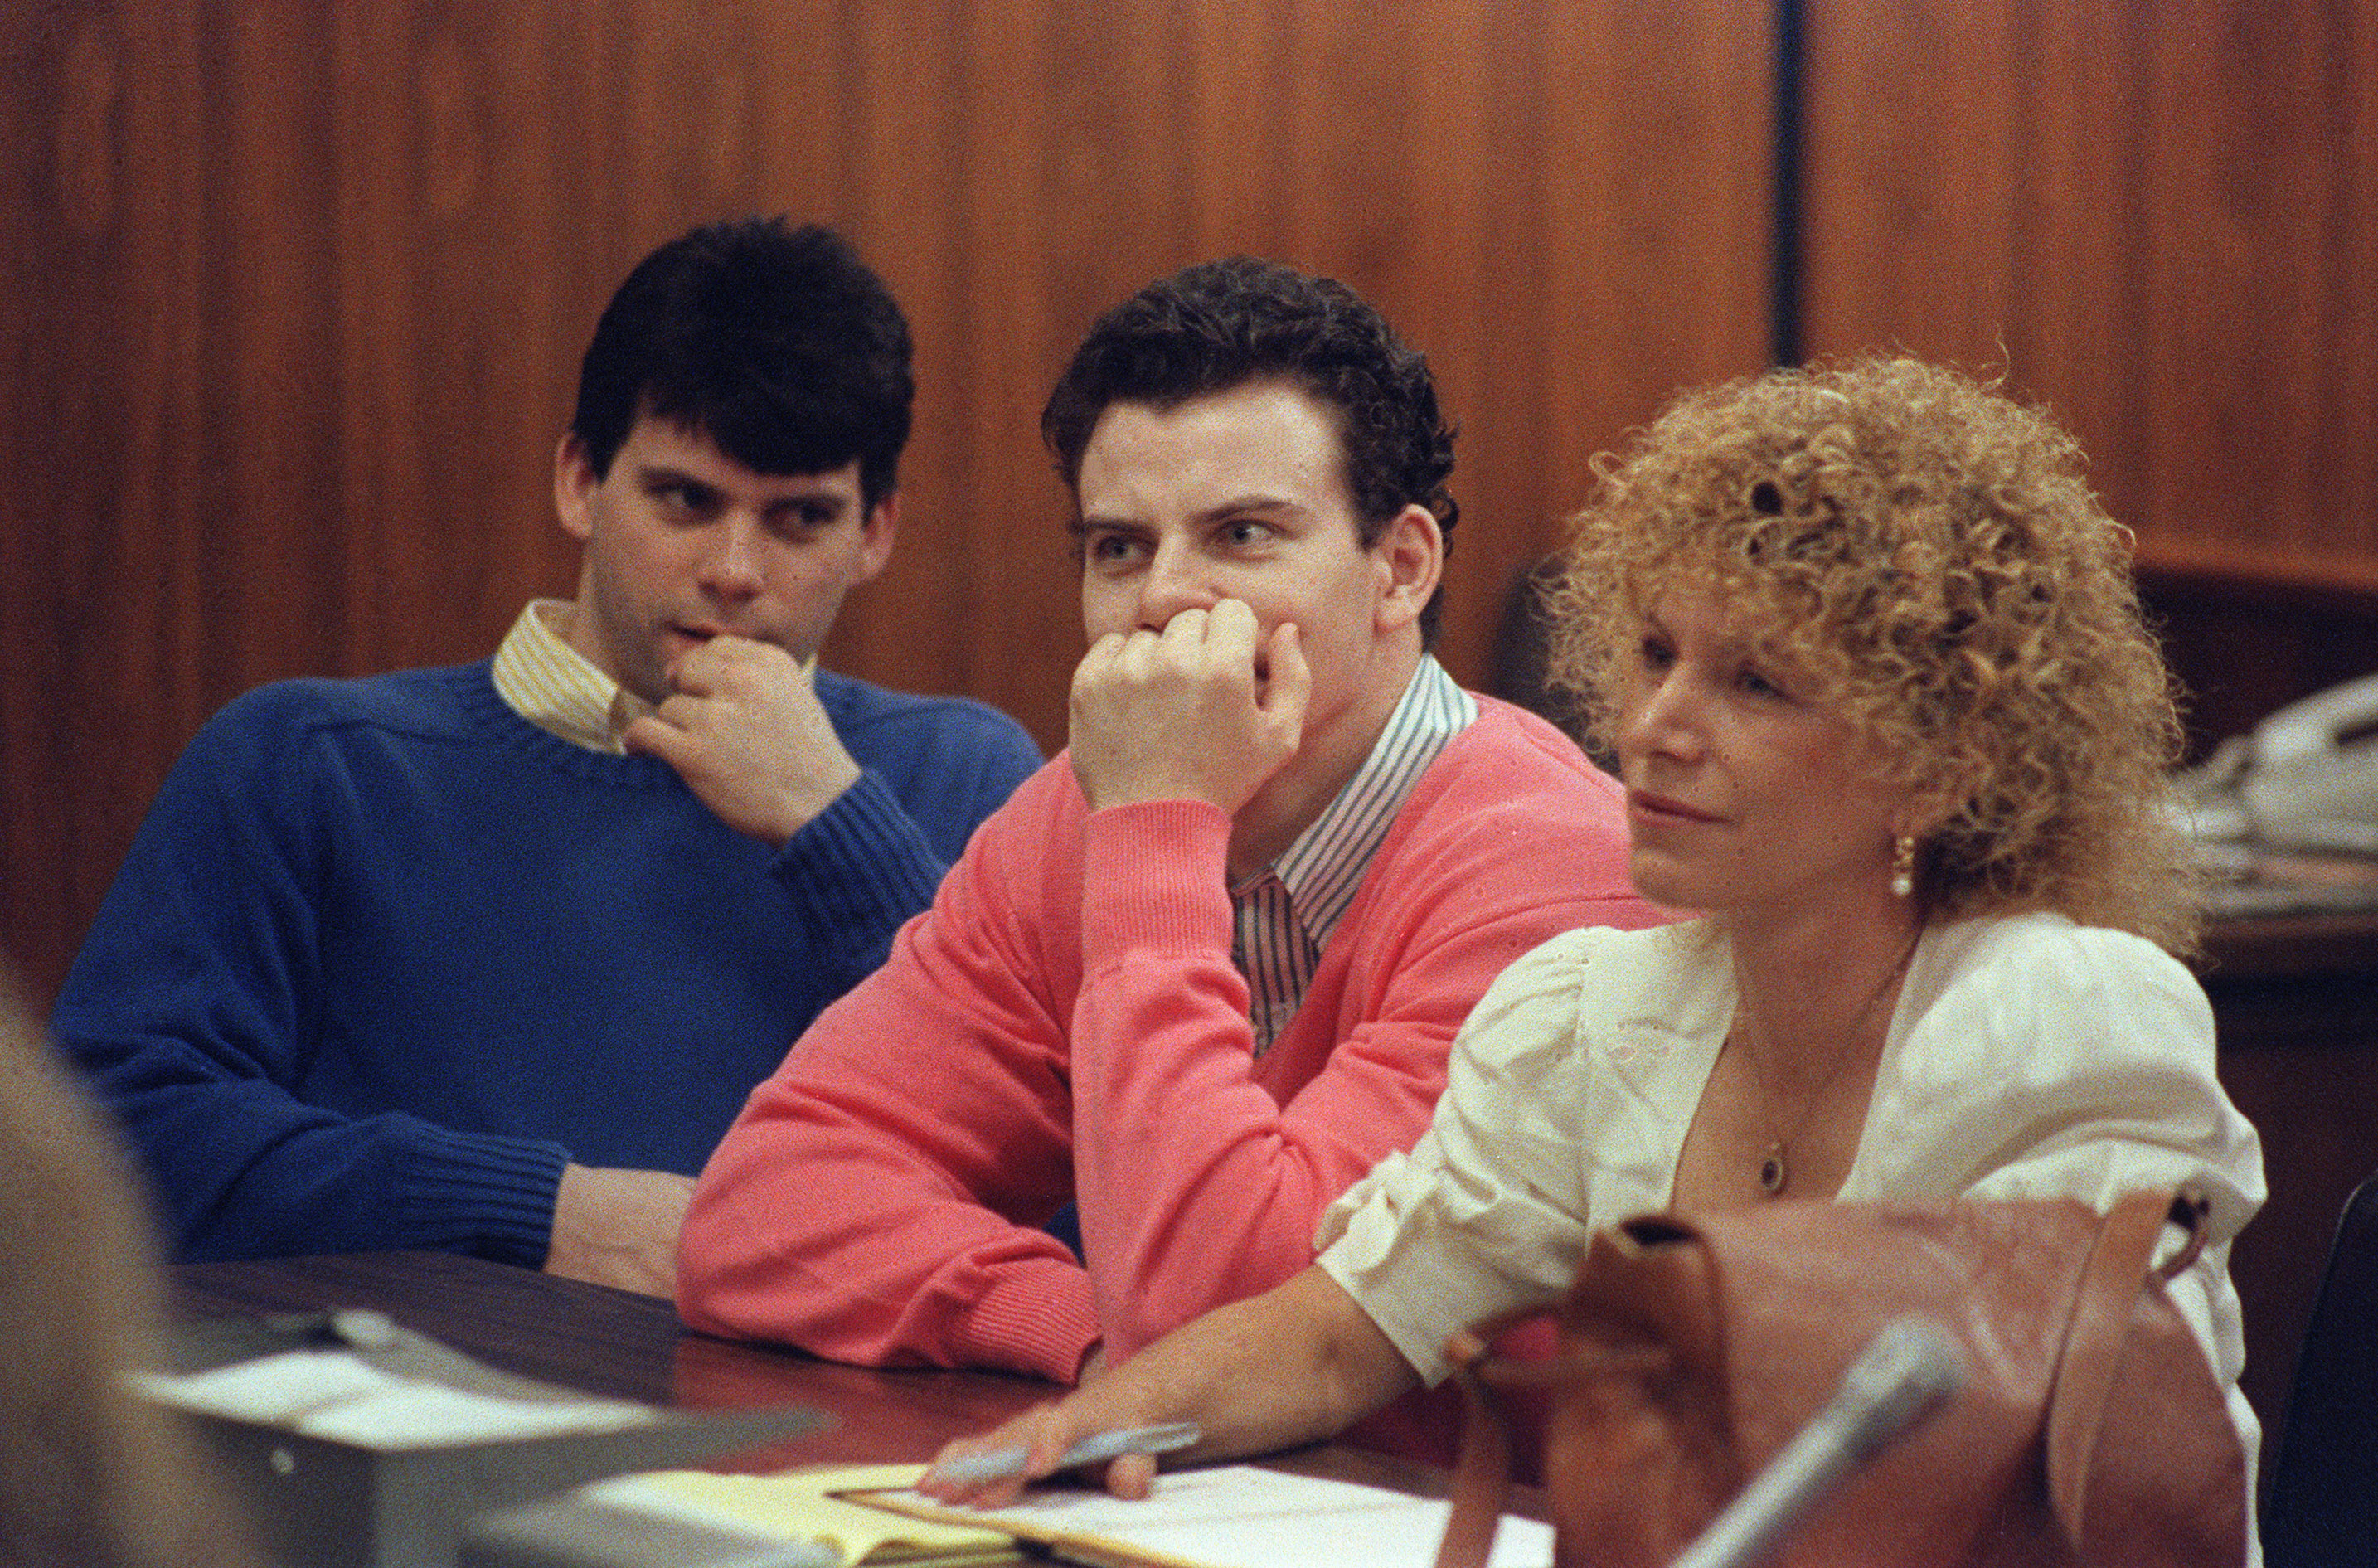 Erik Menendez (C) and his brother Lyle (L) are pictured, on Aug. 12, 1991 in Beverly Hills